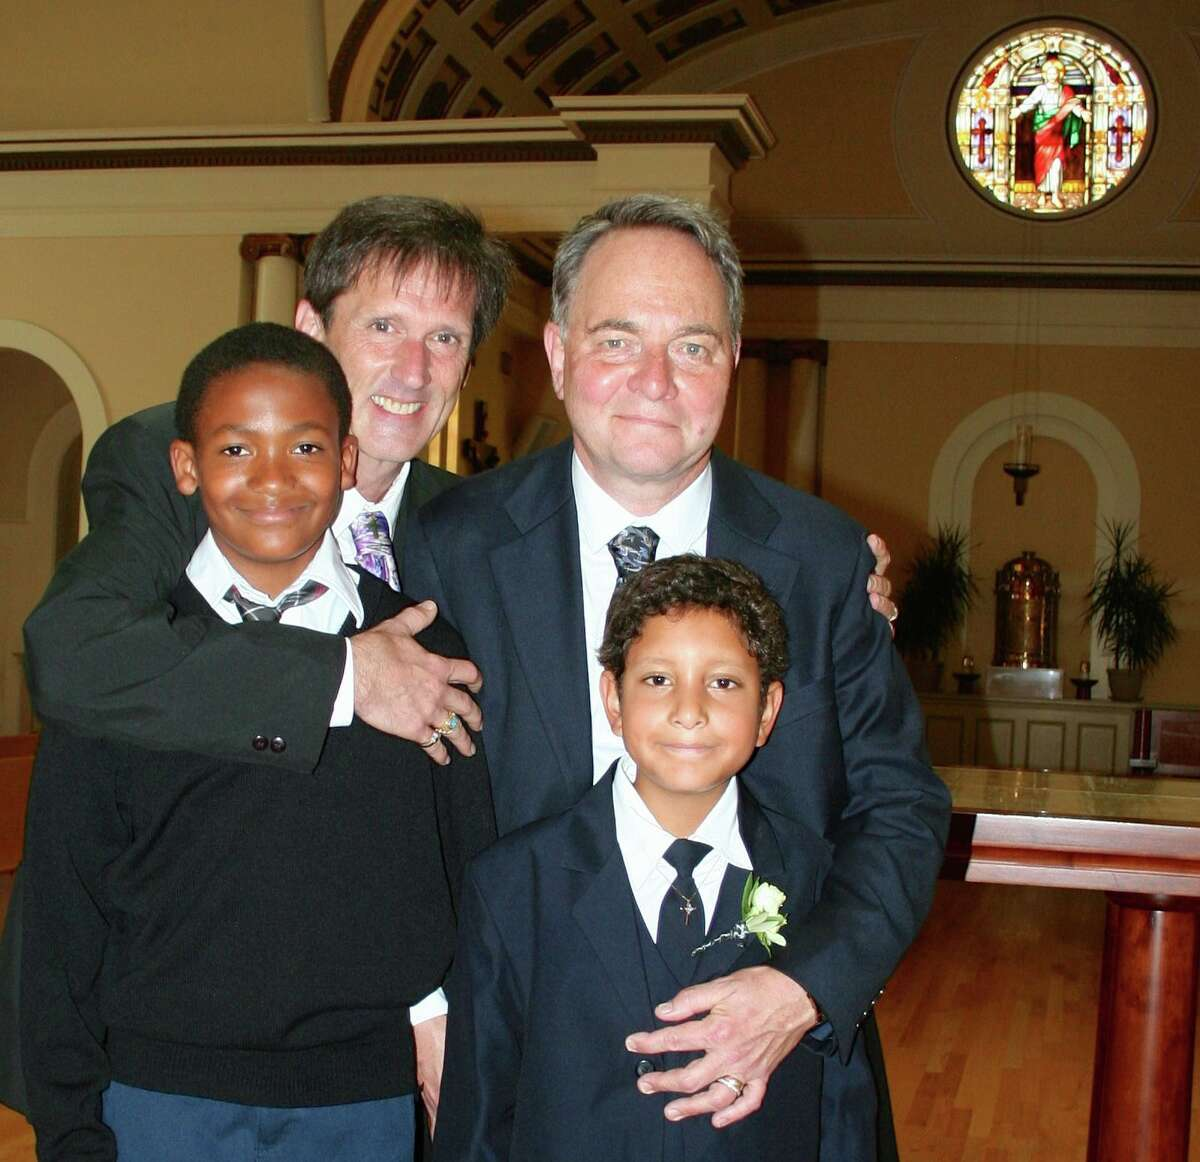 Kevin Fisher-Paulson (right) and husband Brian, with sons Zane (left) and Aidan at Most Holy Redeemer Church in San Francisco.